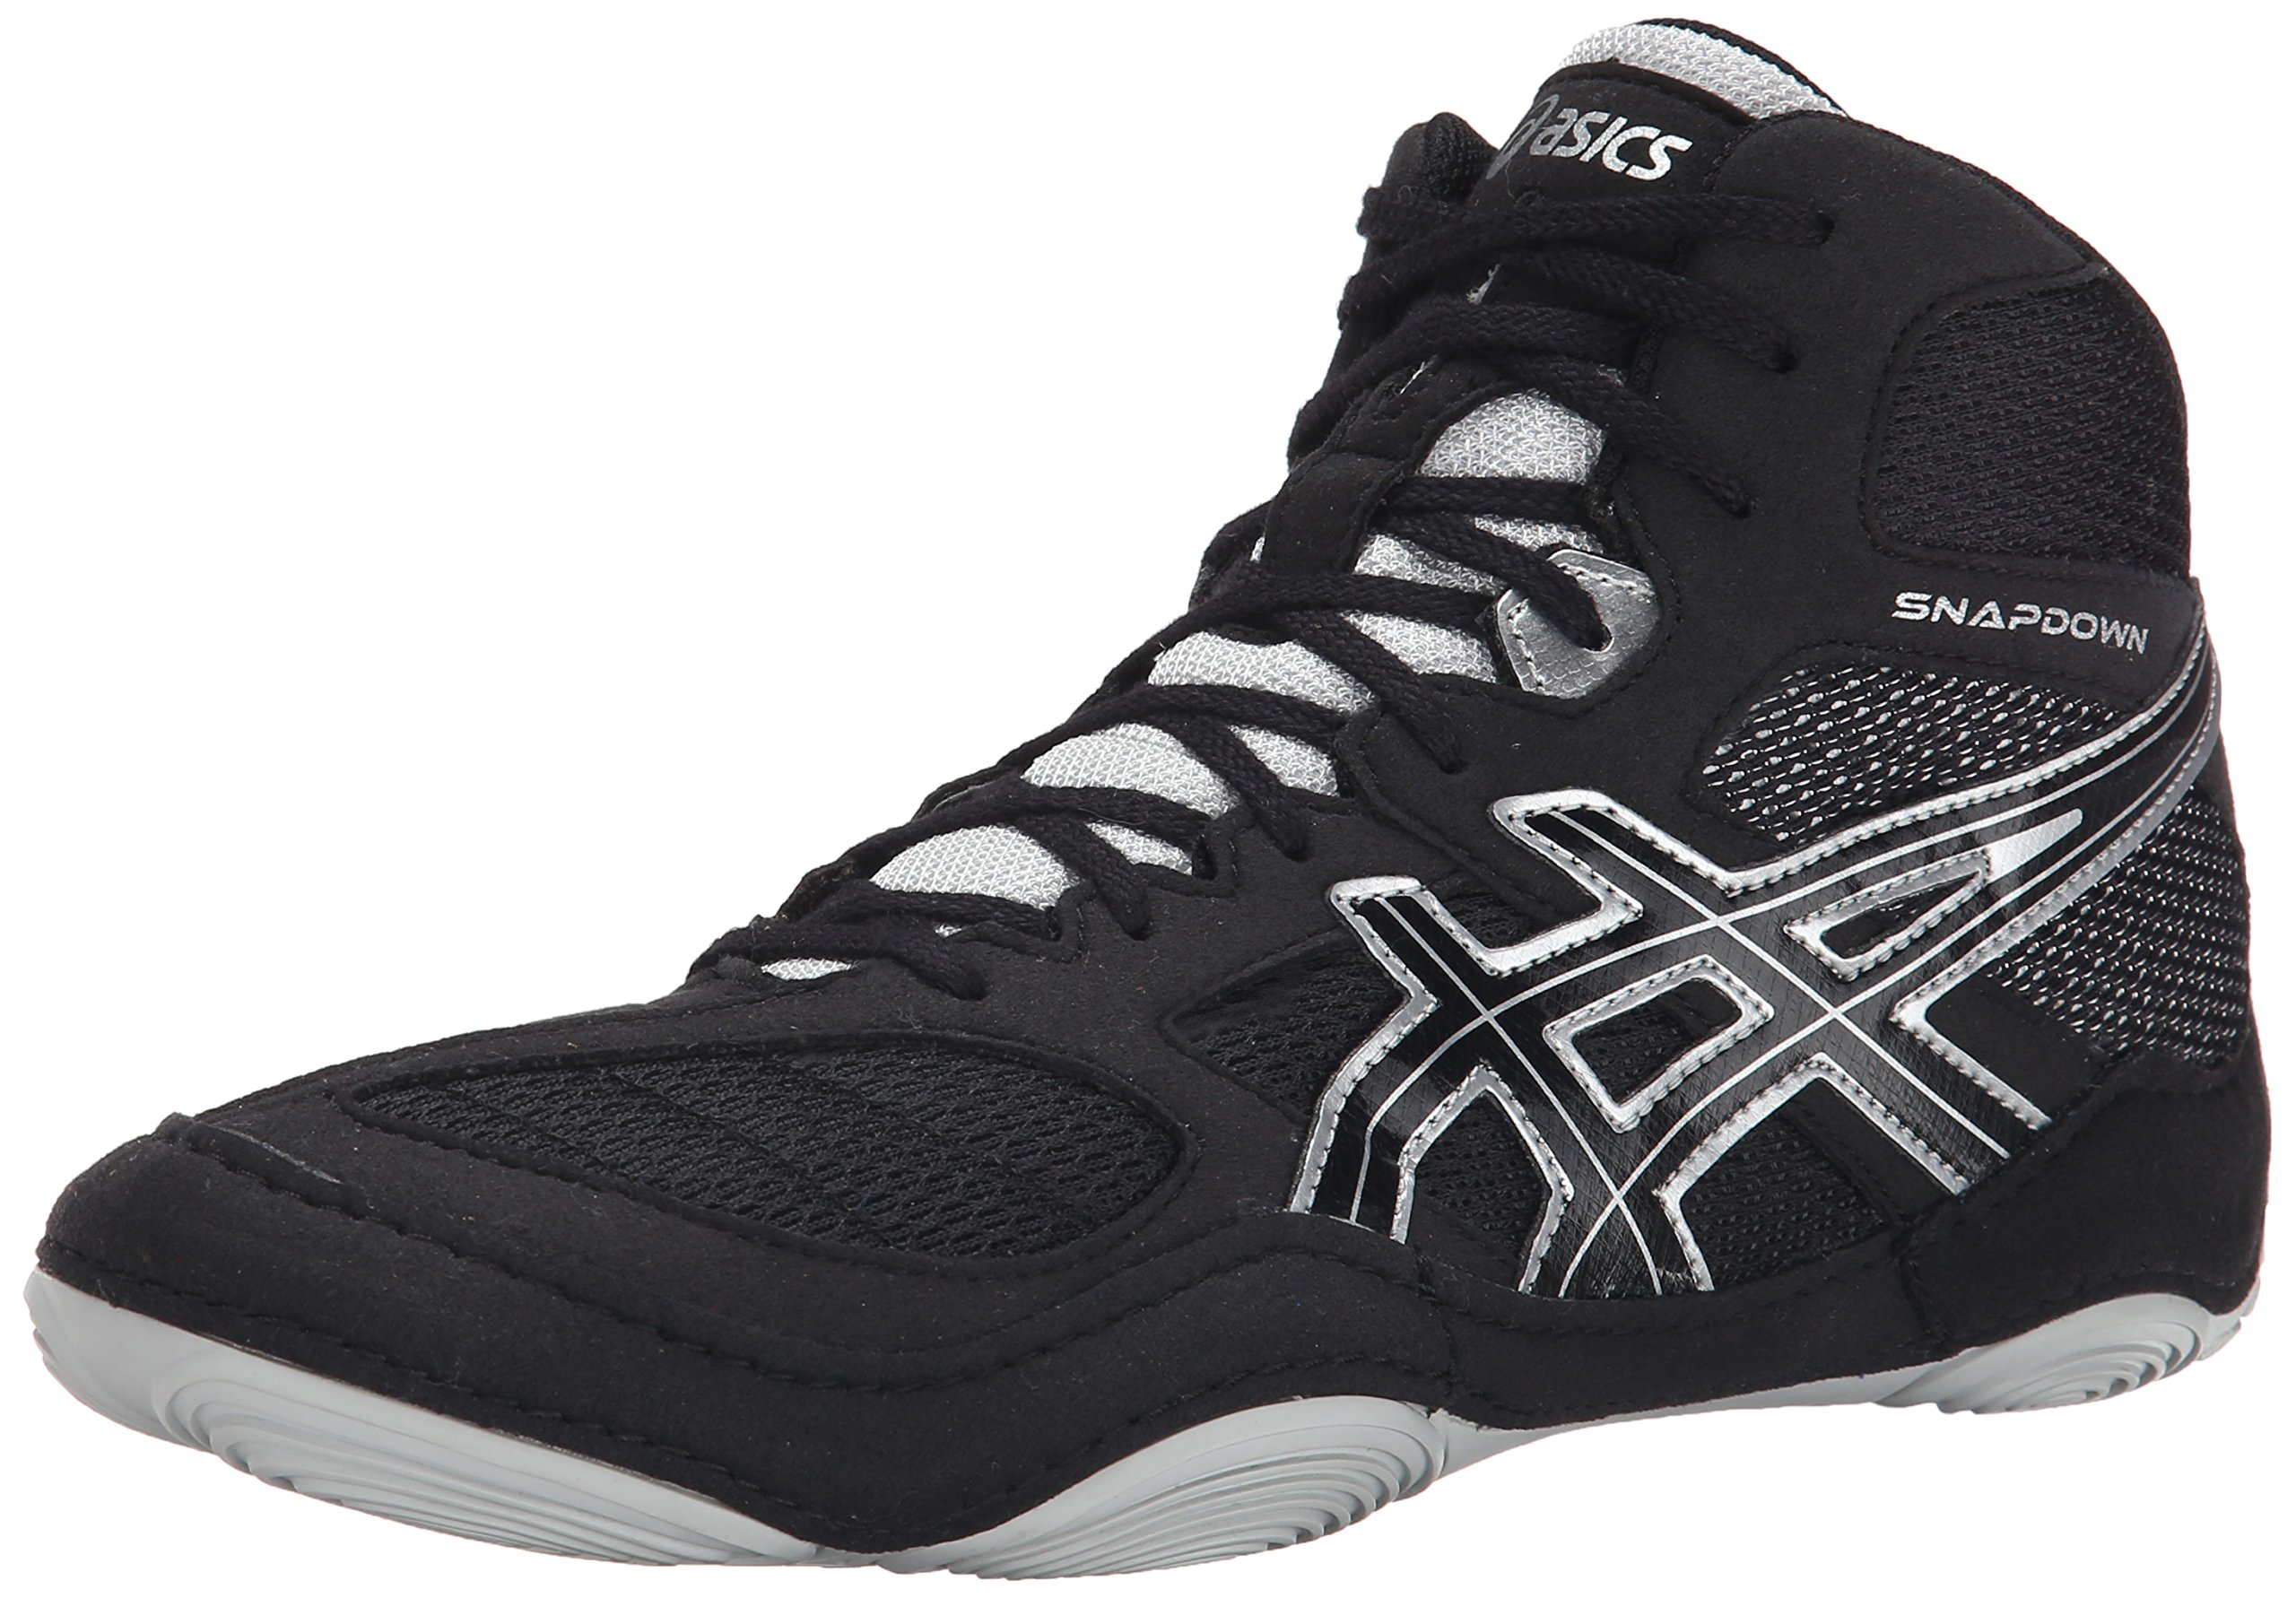 ASICS Men's Snapdown, Black/Silver, 10.5 M US by ASICS